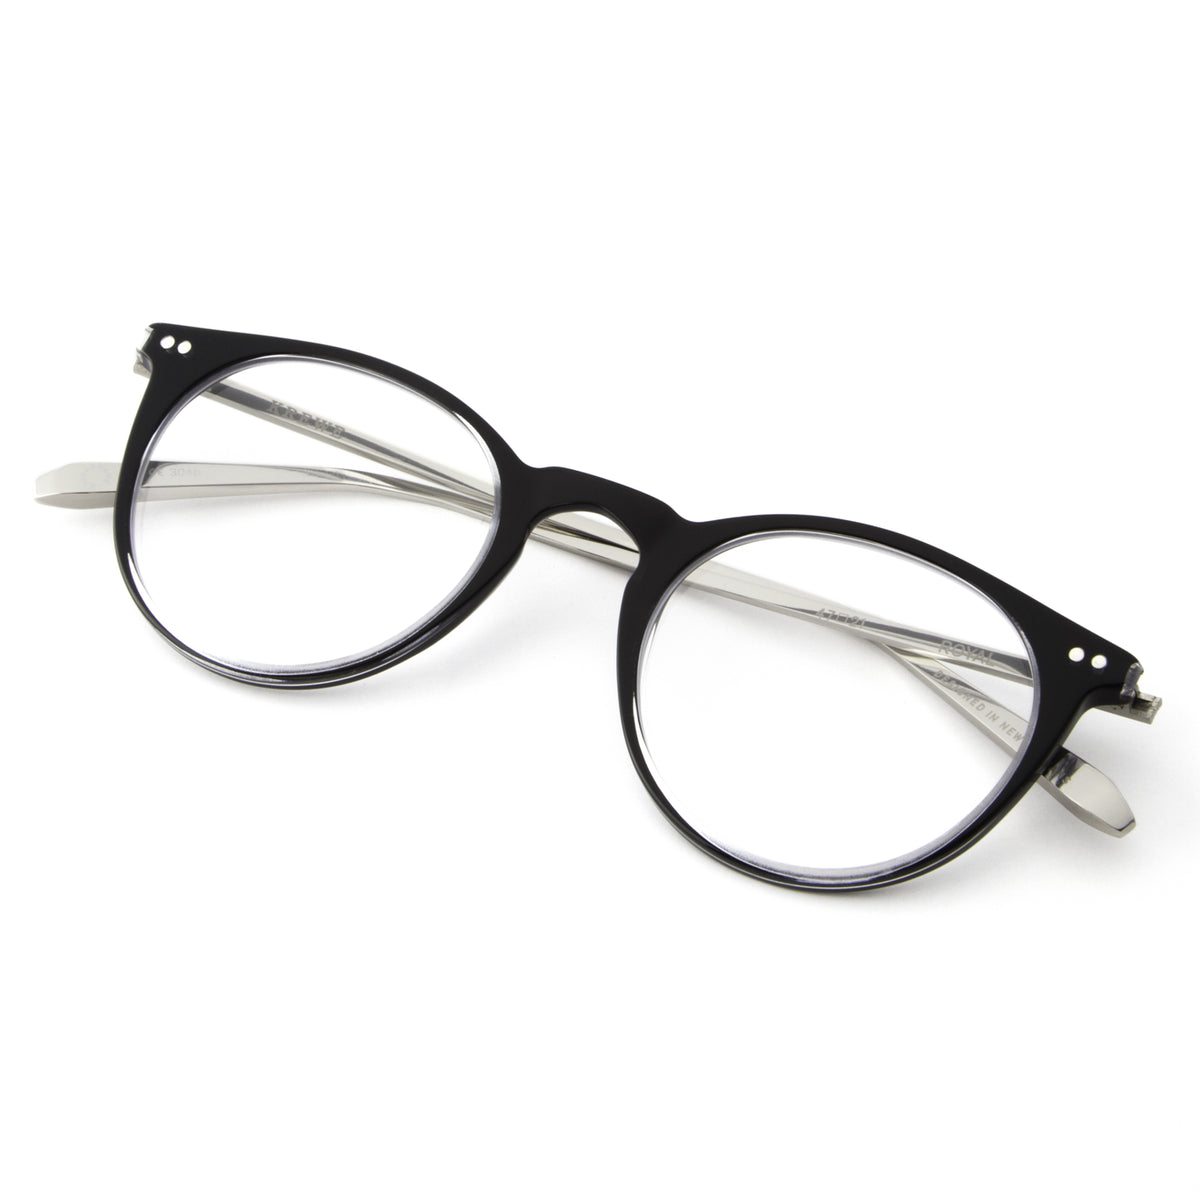 ROYAL | Crystal and Black + Titanium and handcrafted acetate Optical frames that are perfect for everyday wear.